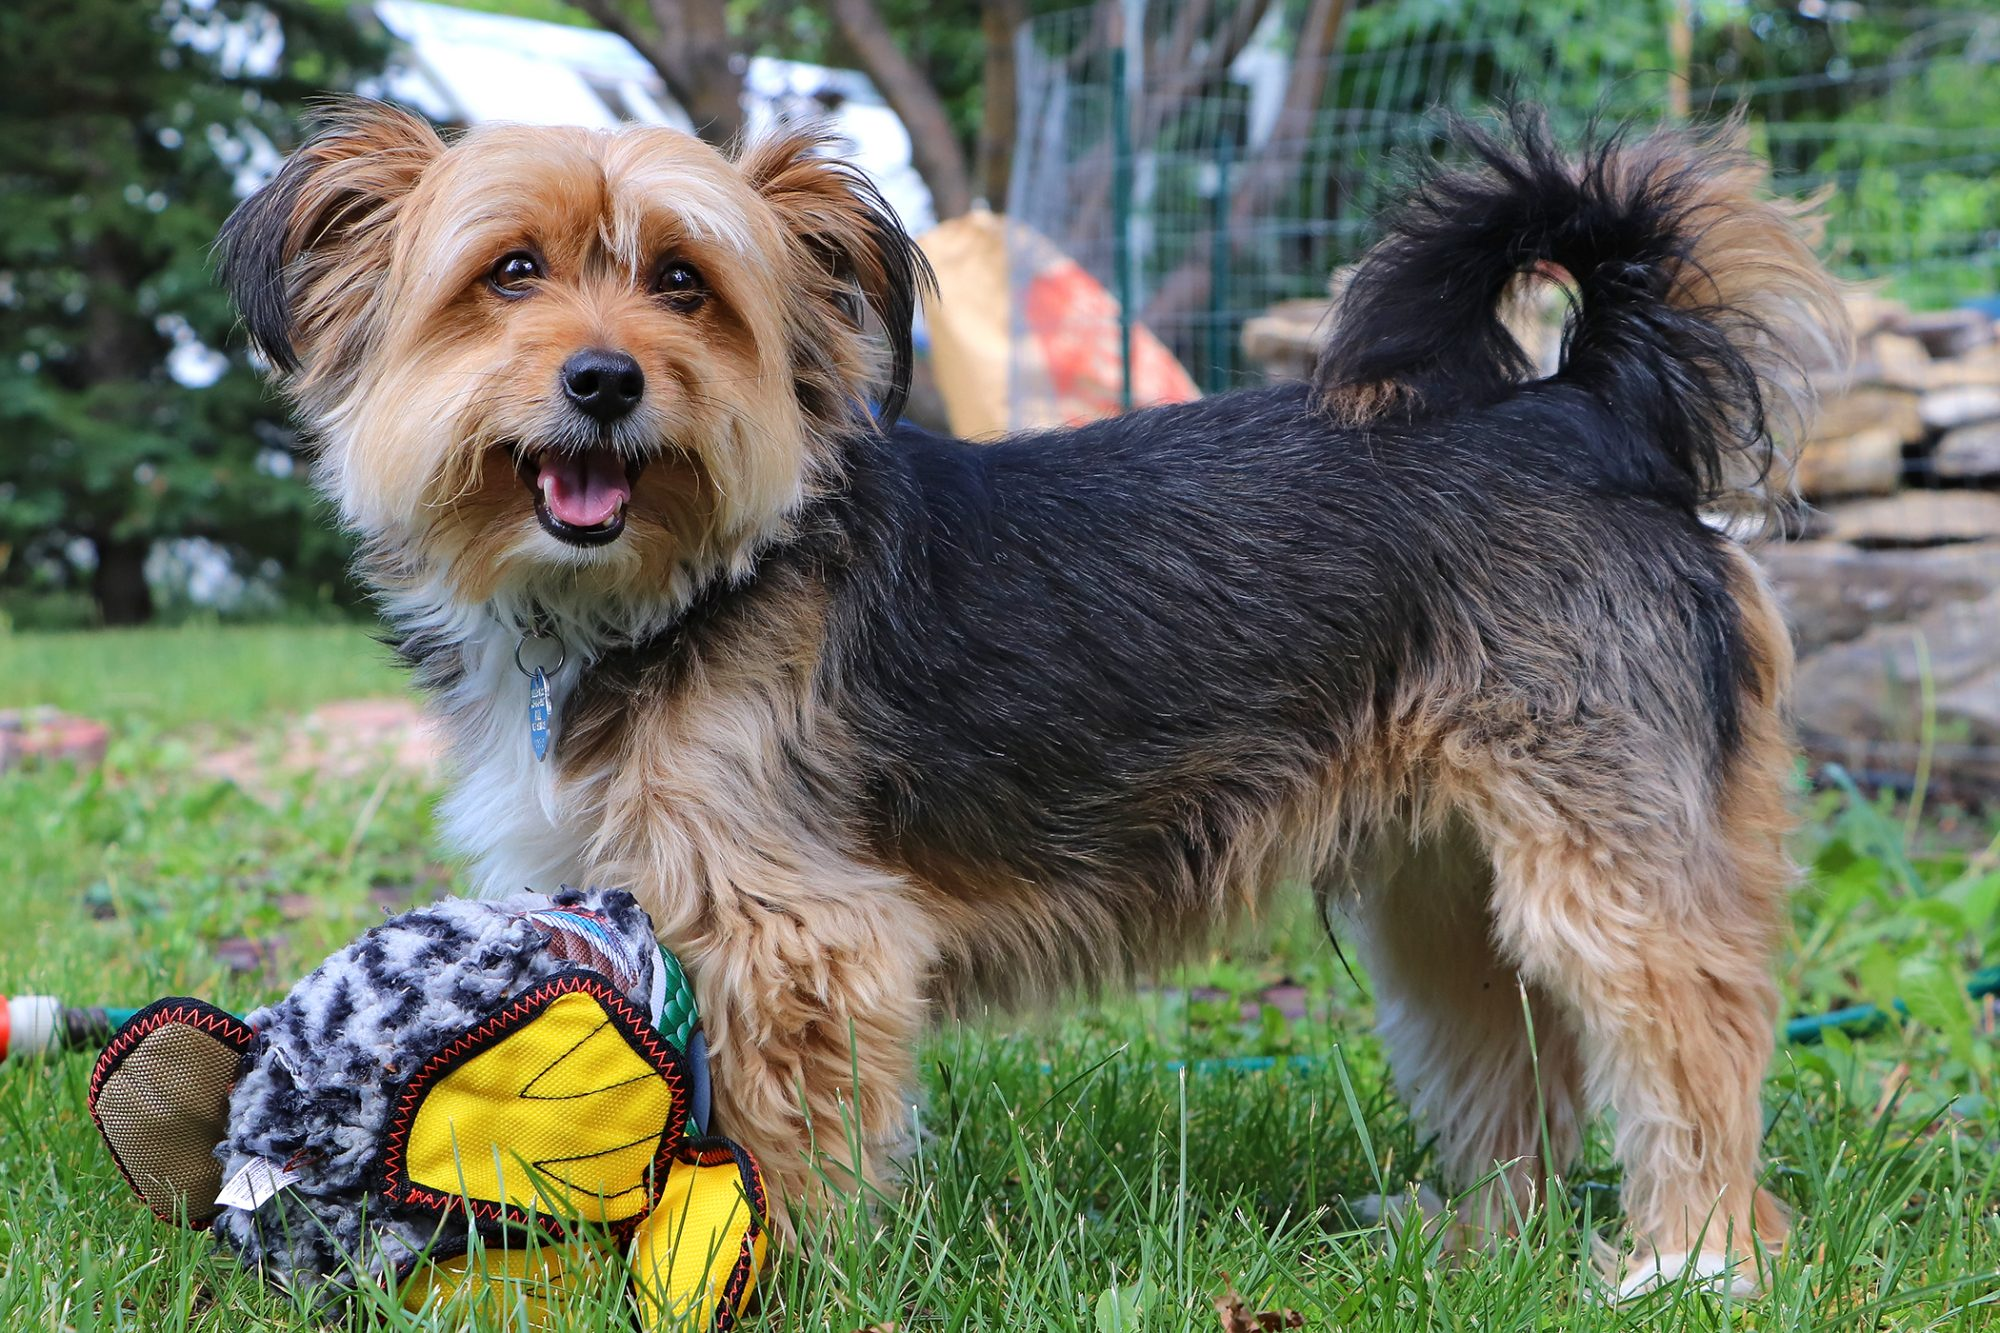 Adult black and tan shorkie plays with toys in yard